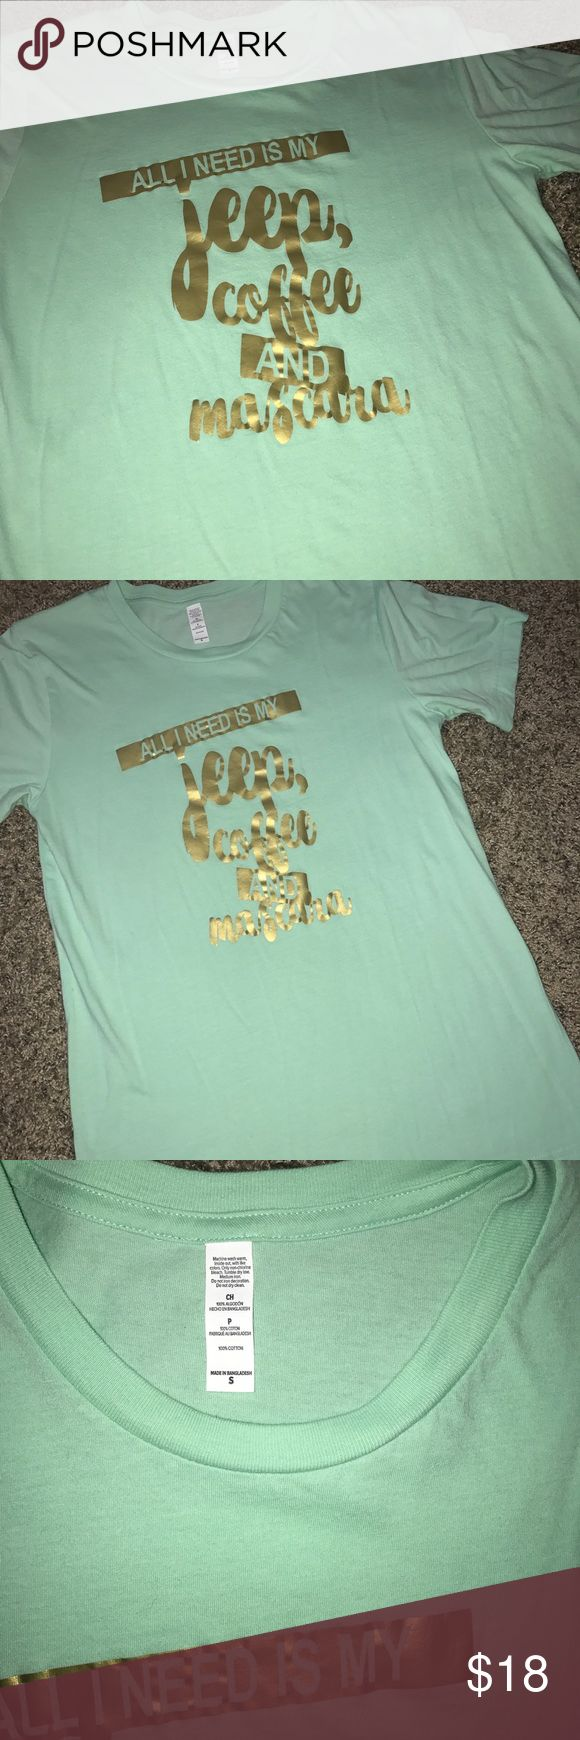 Jeep Tshirt Super cute mint green and gold lettering!! For those jeep lovers!! Size small!! In excellent condition!! Open to offers!! :) Tops Tees - Short Sleeve